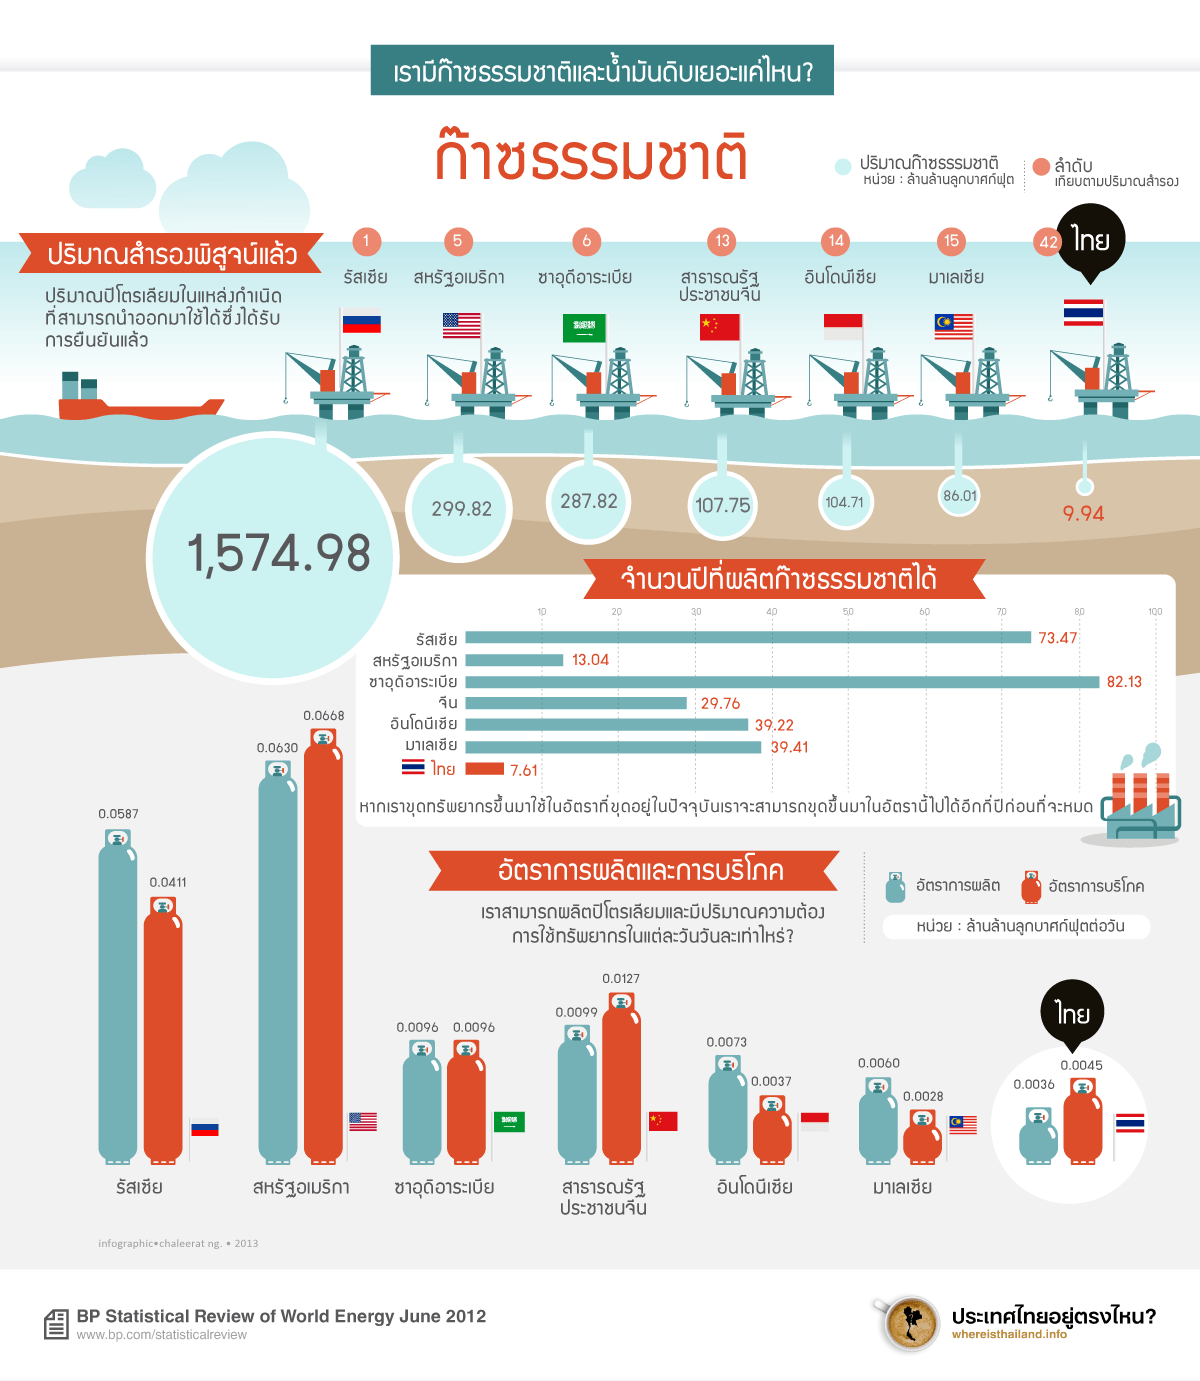 PetroleumThai-infographic-Proved-Reserves-of-Natural-Gas